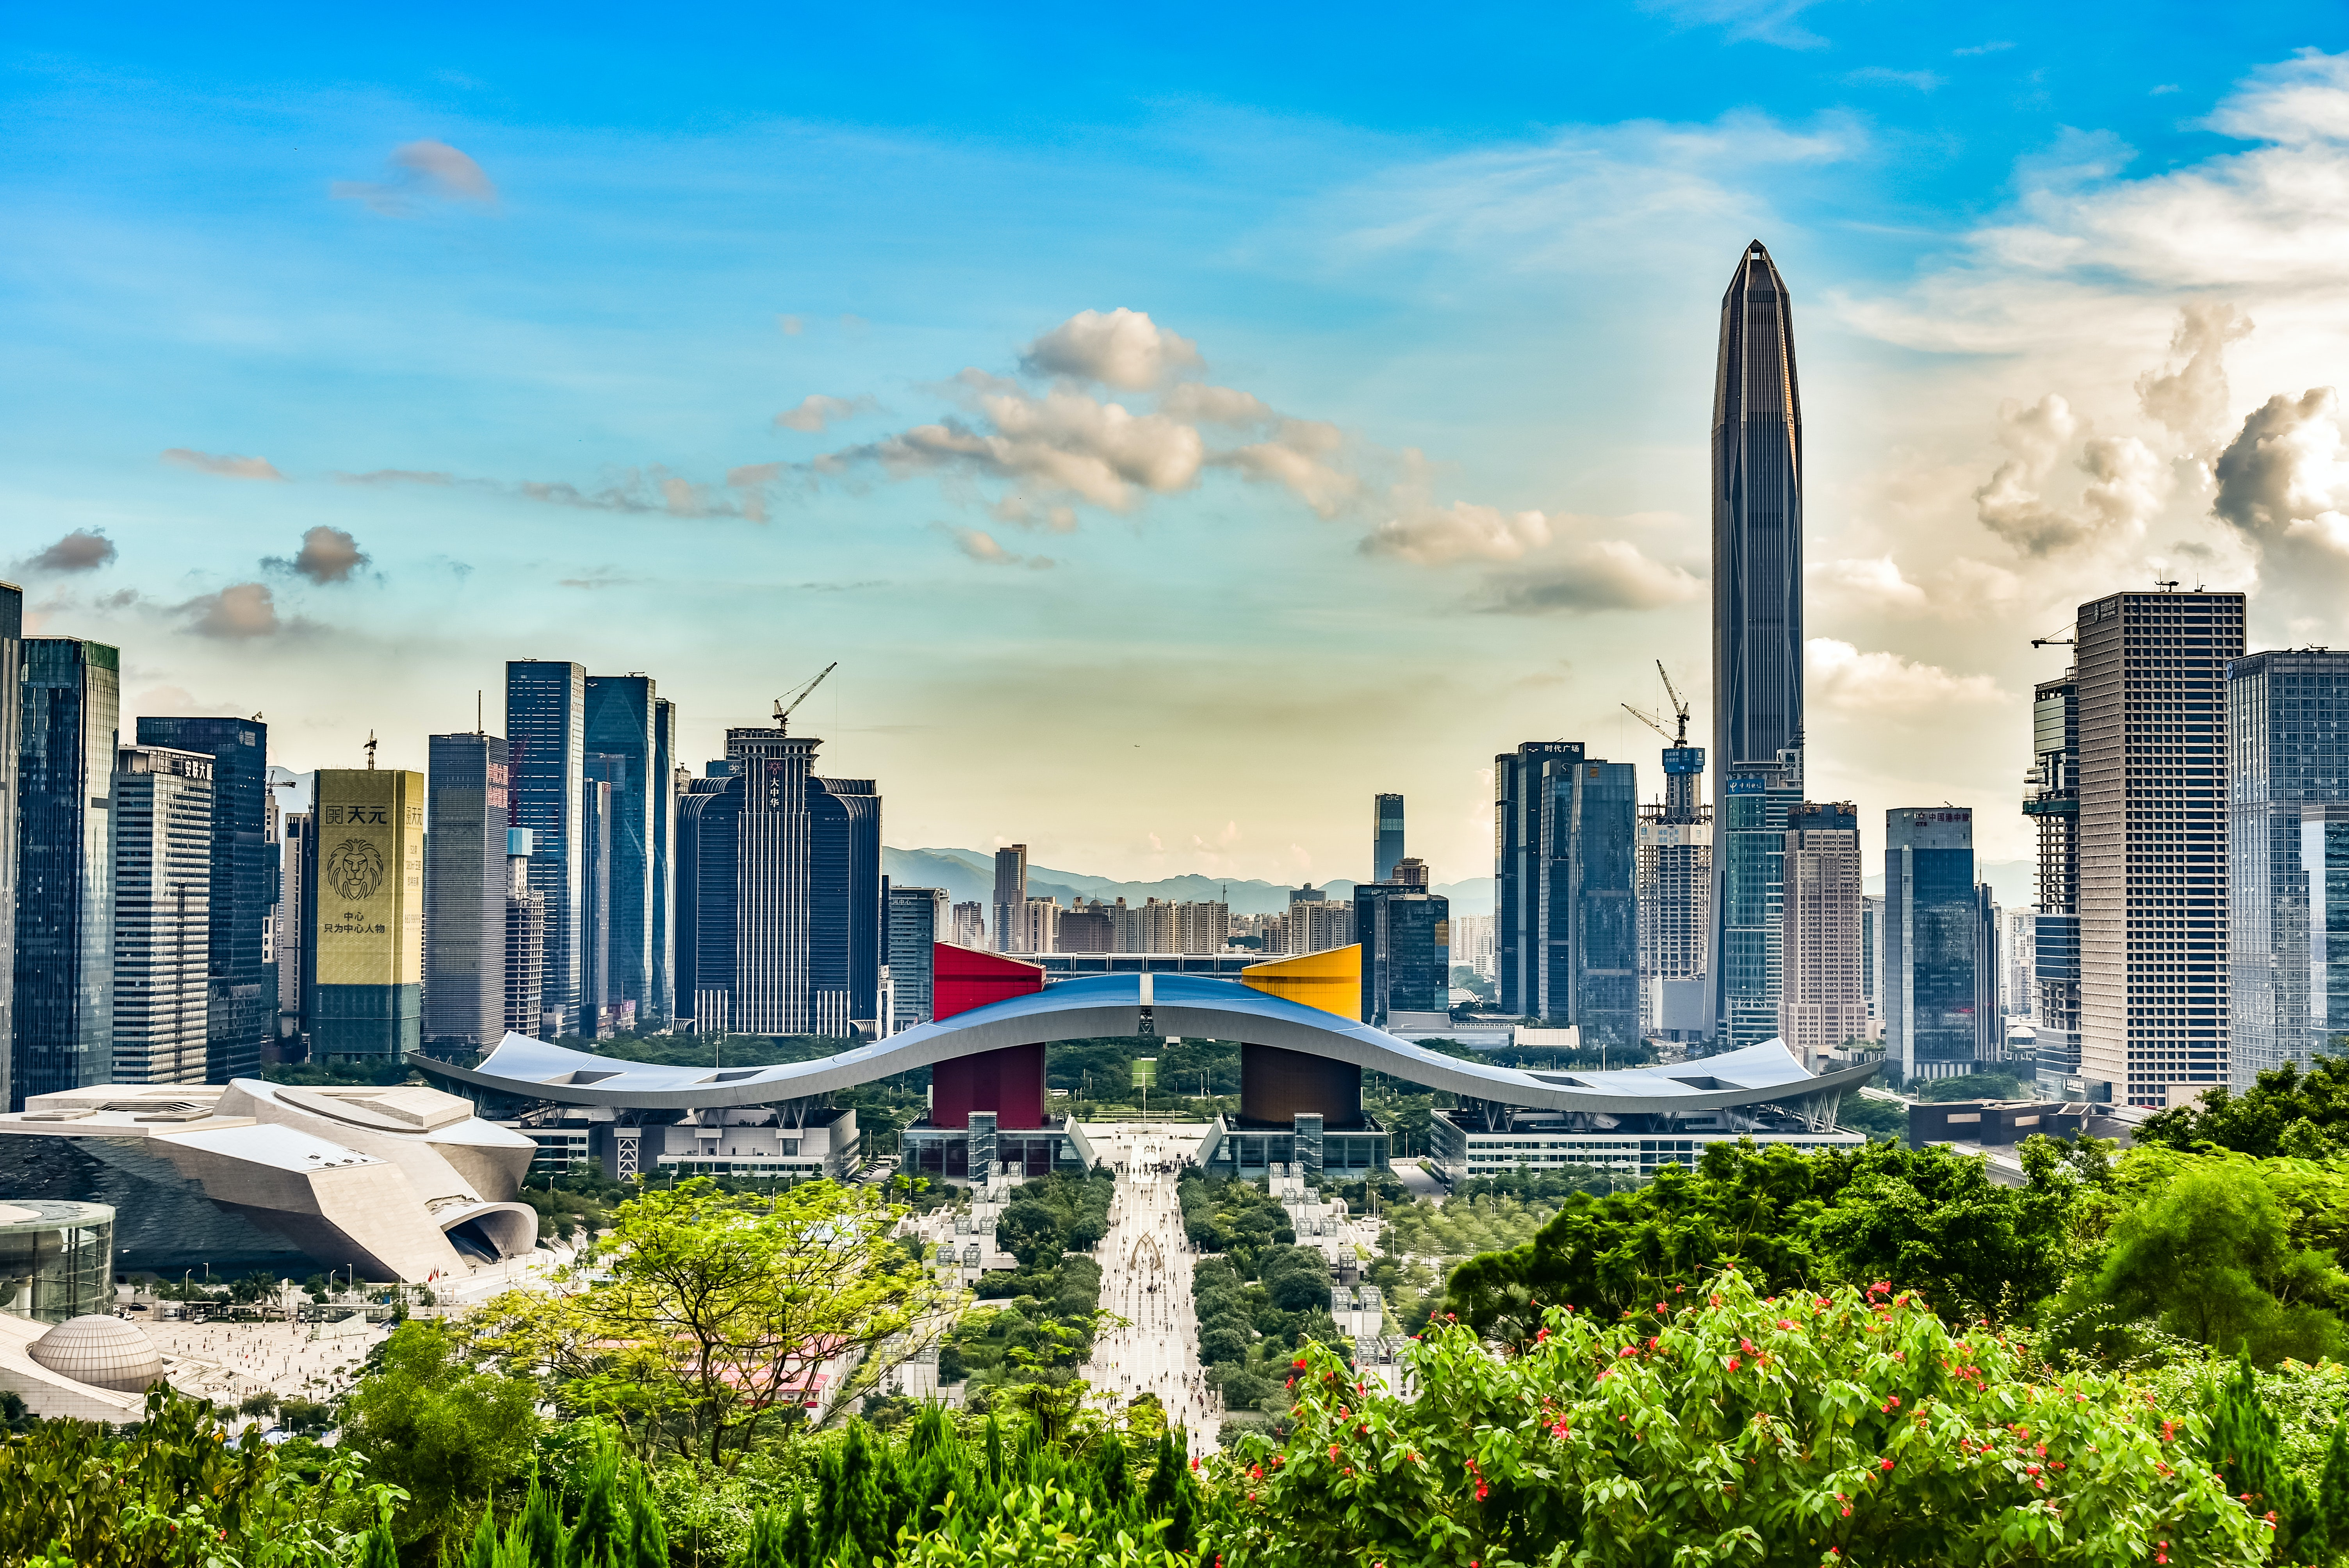 Cityscape of Shenzhen, China. Shutterstock.